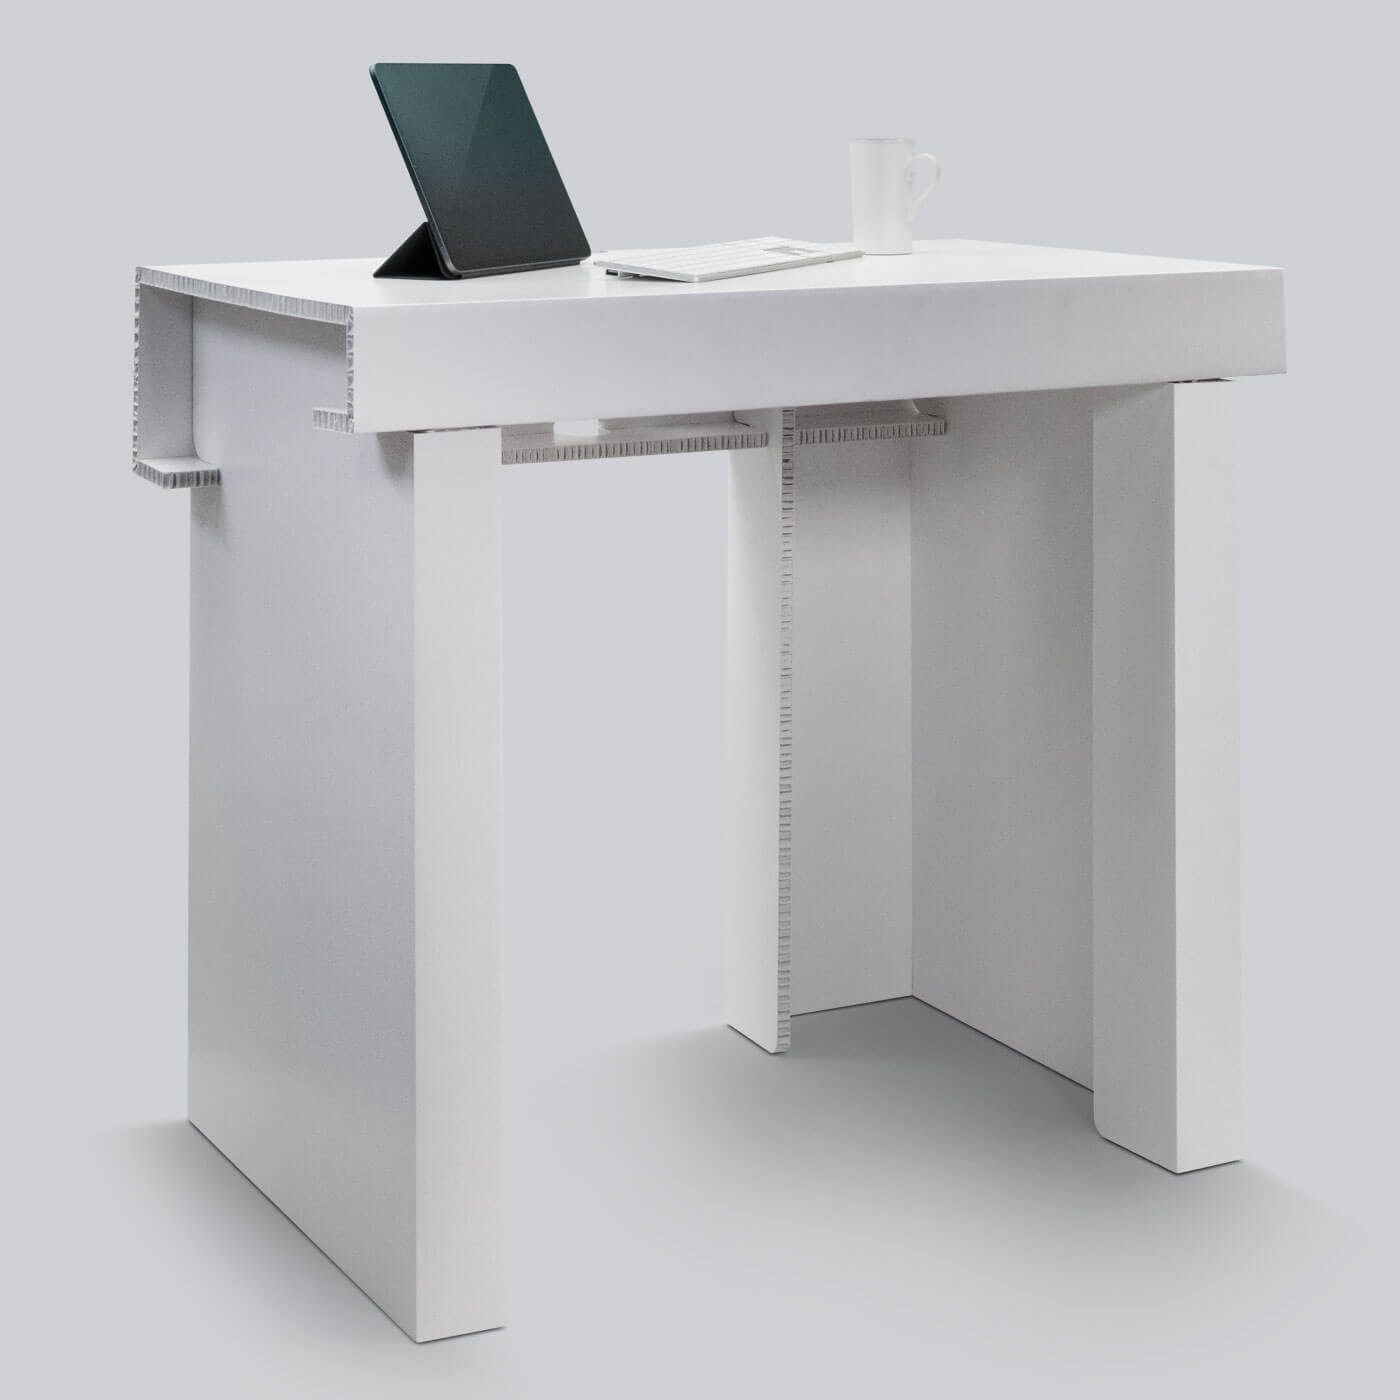 Temporary but durable desk for working from home and home schooling